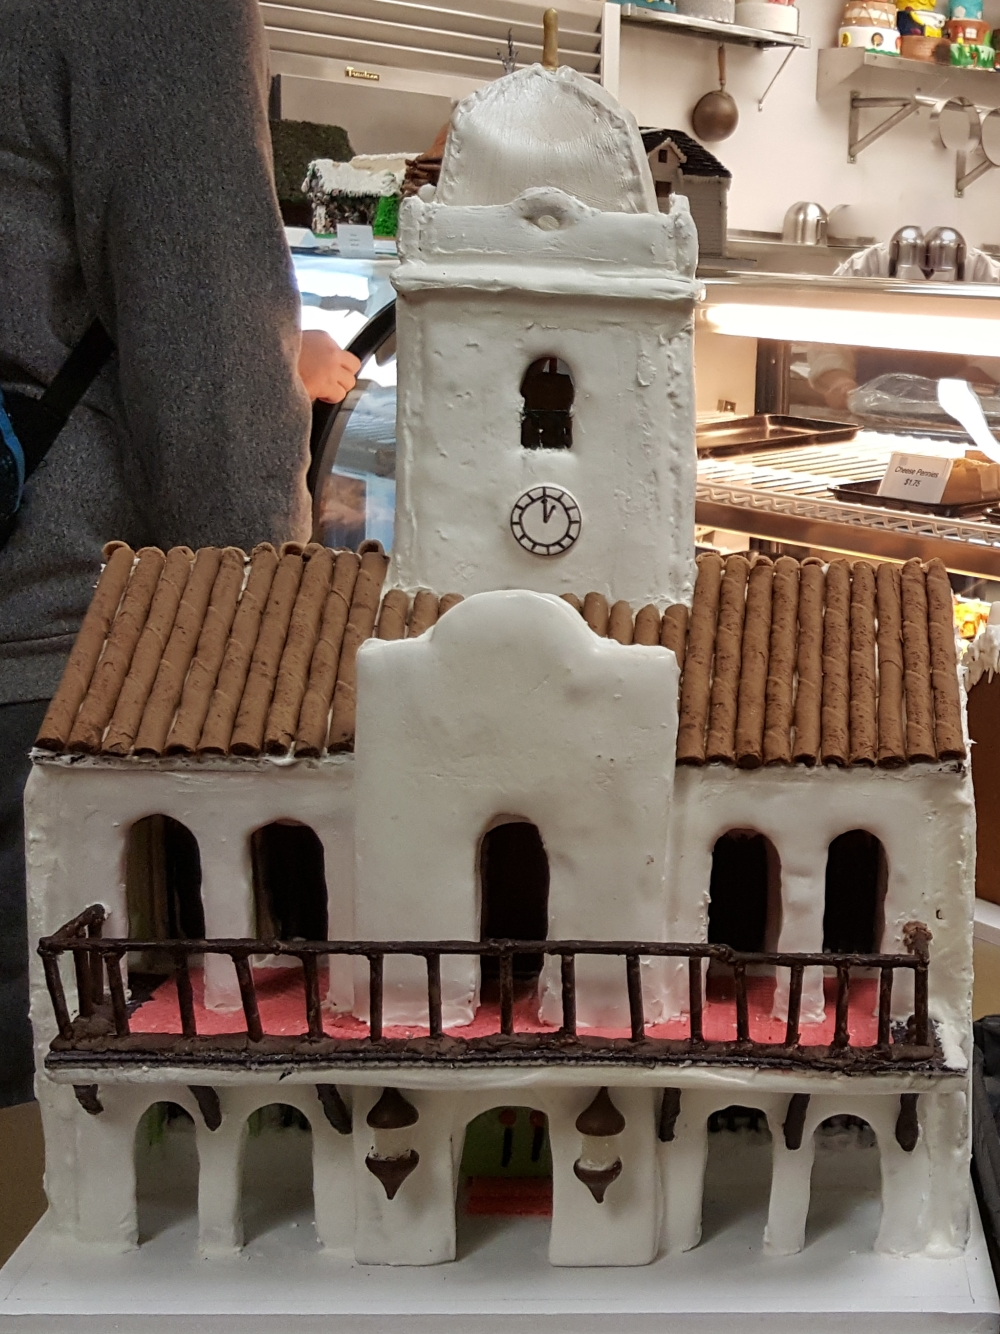 2016 Gingerbread 3 Story Abobe House